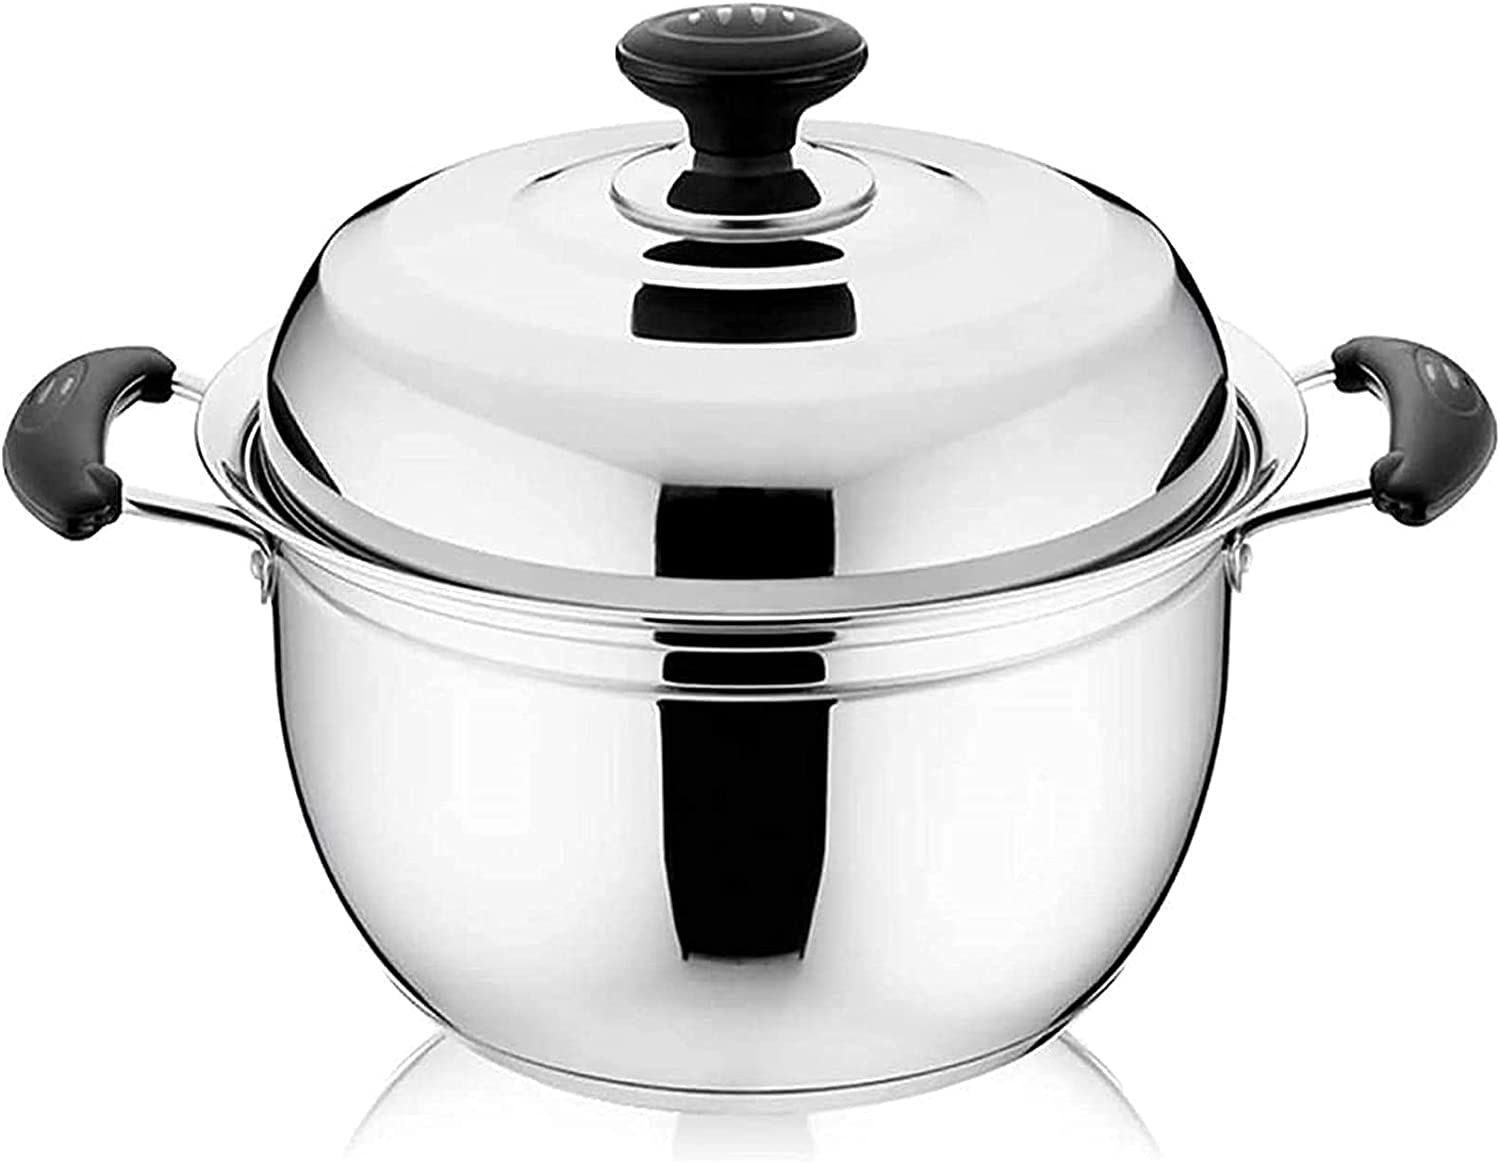 Pans Max 64% OFF for cooking Food Grade Stainless with Pot Japan Maker New Steamer Lid Steel